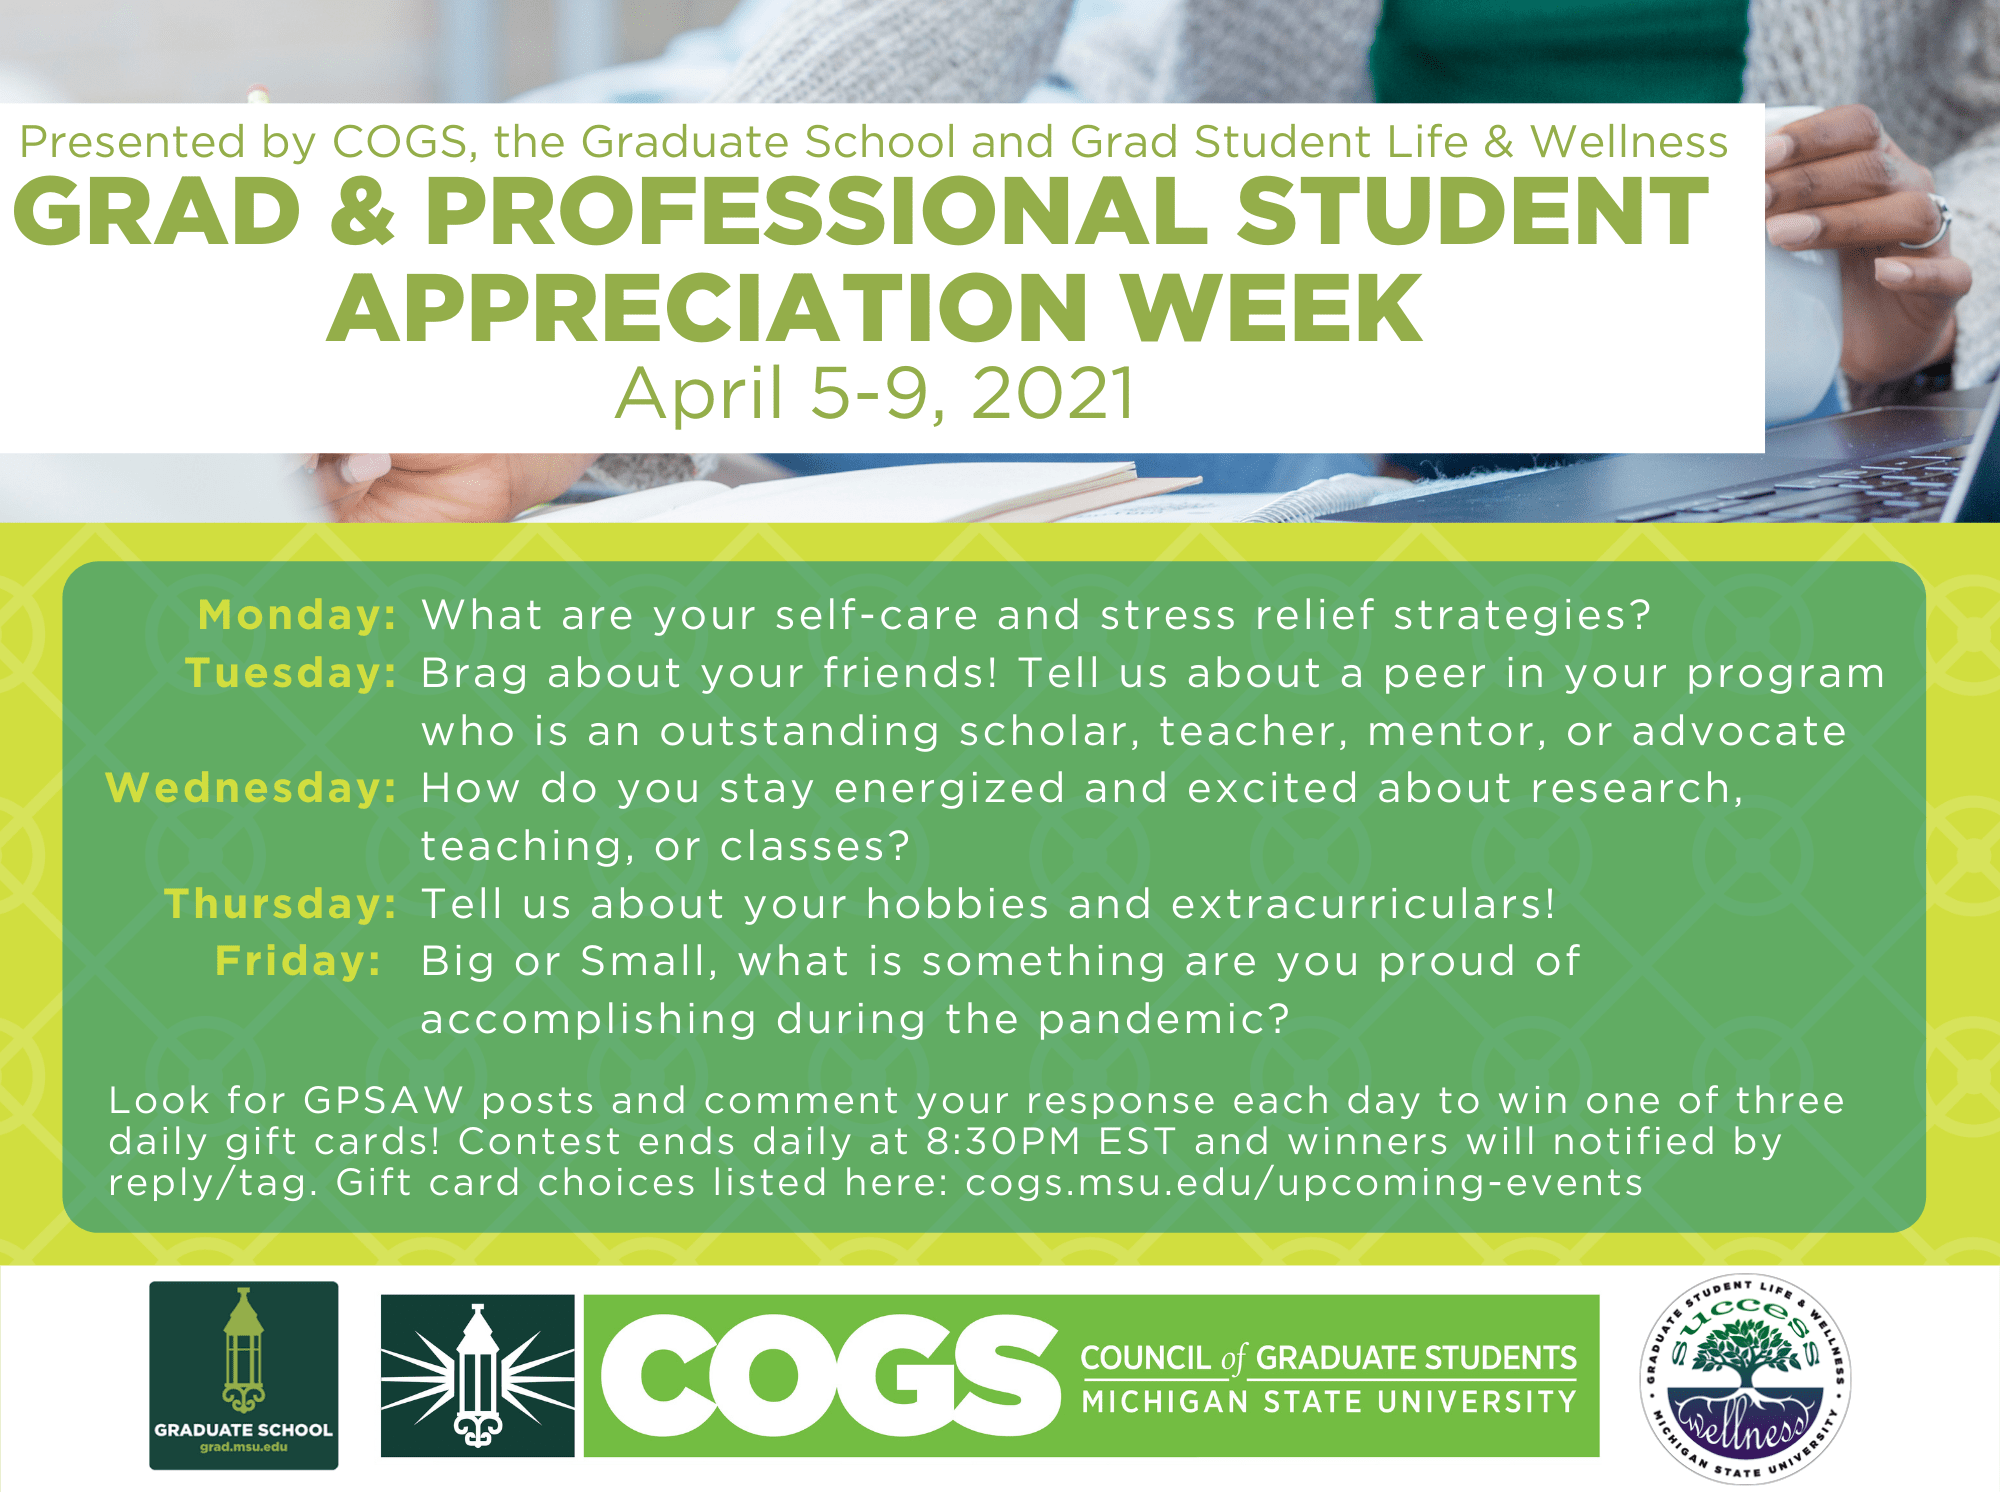 list of Council of Graduate Students events for Grad and professional students appreciate week. text below.